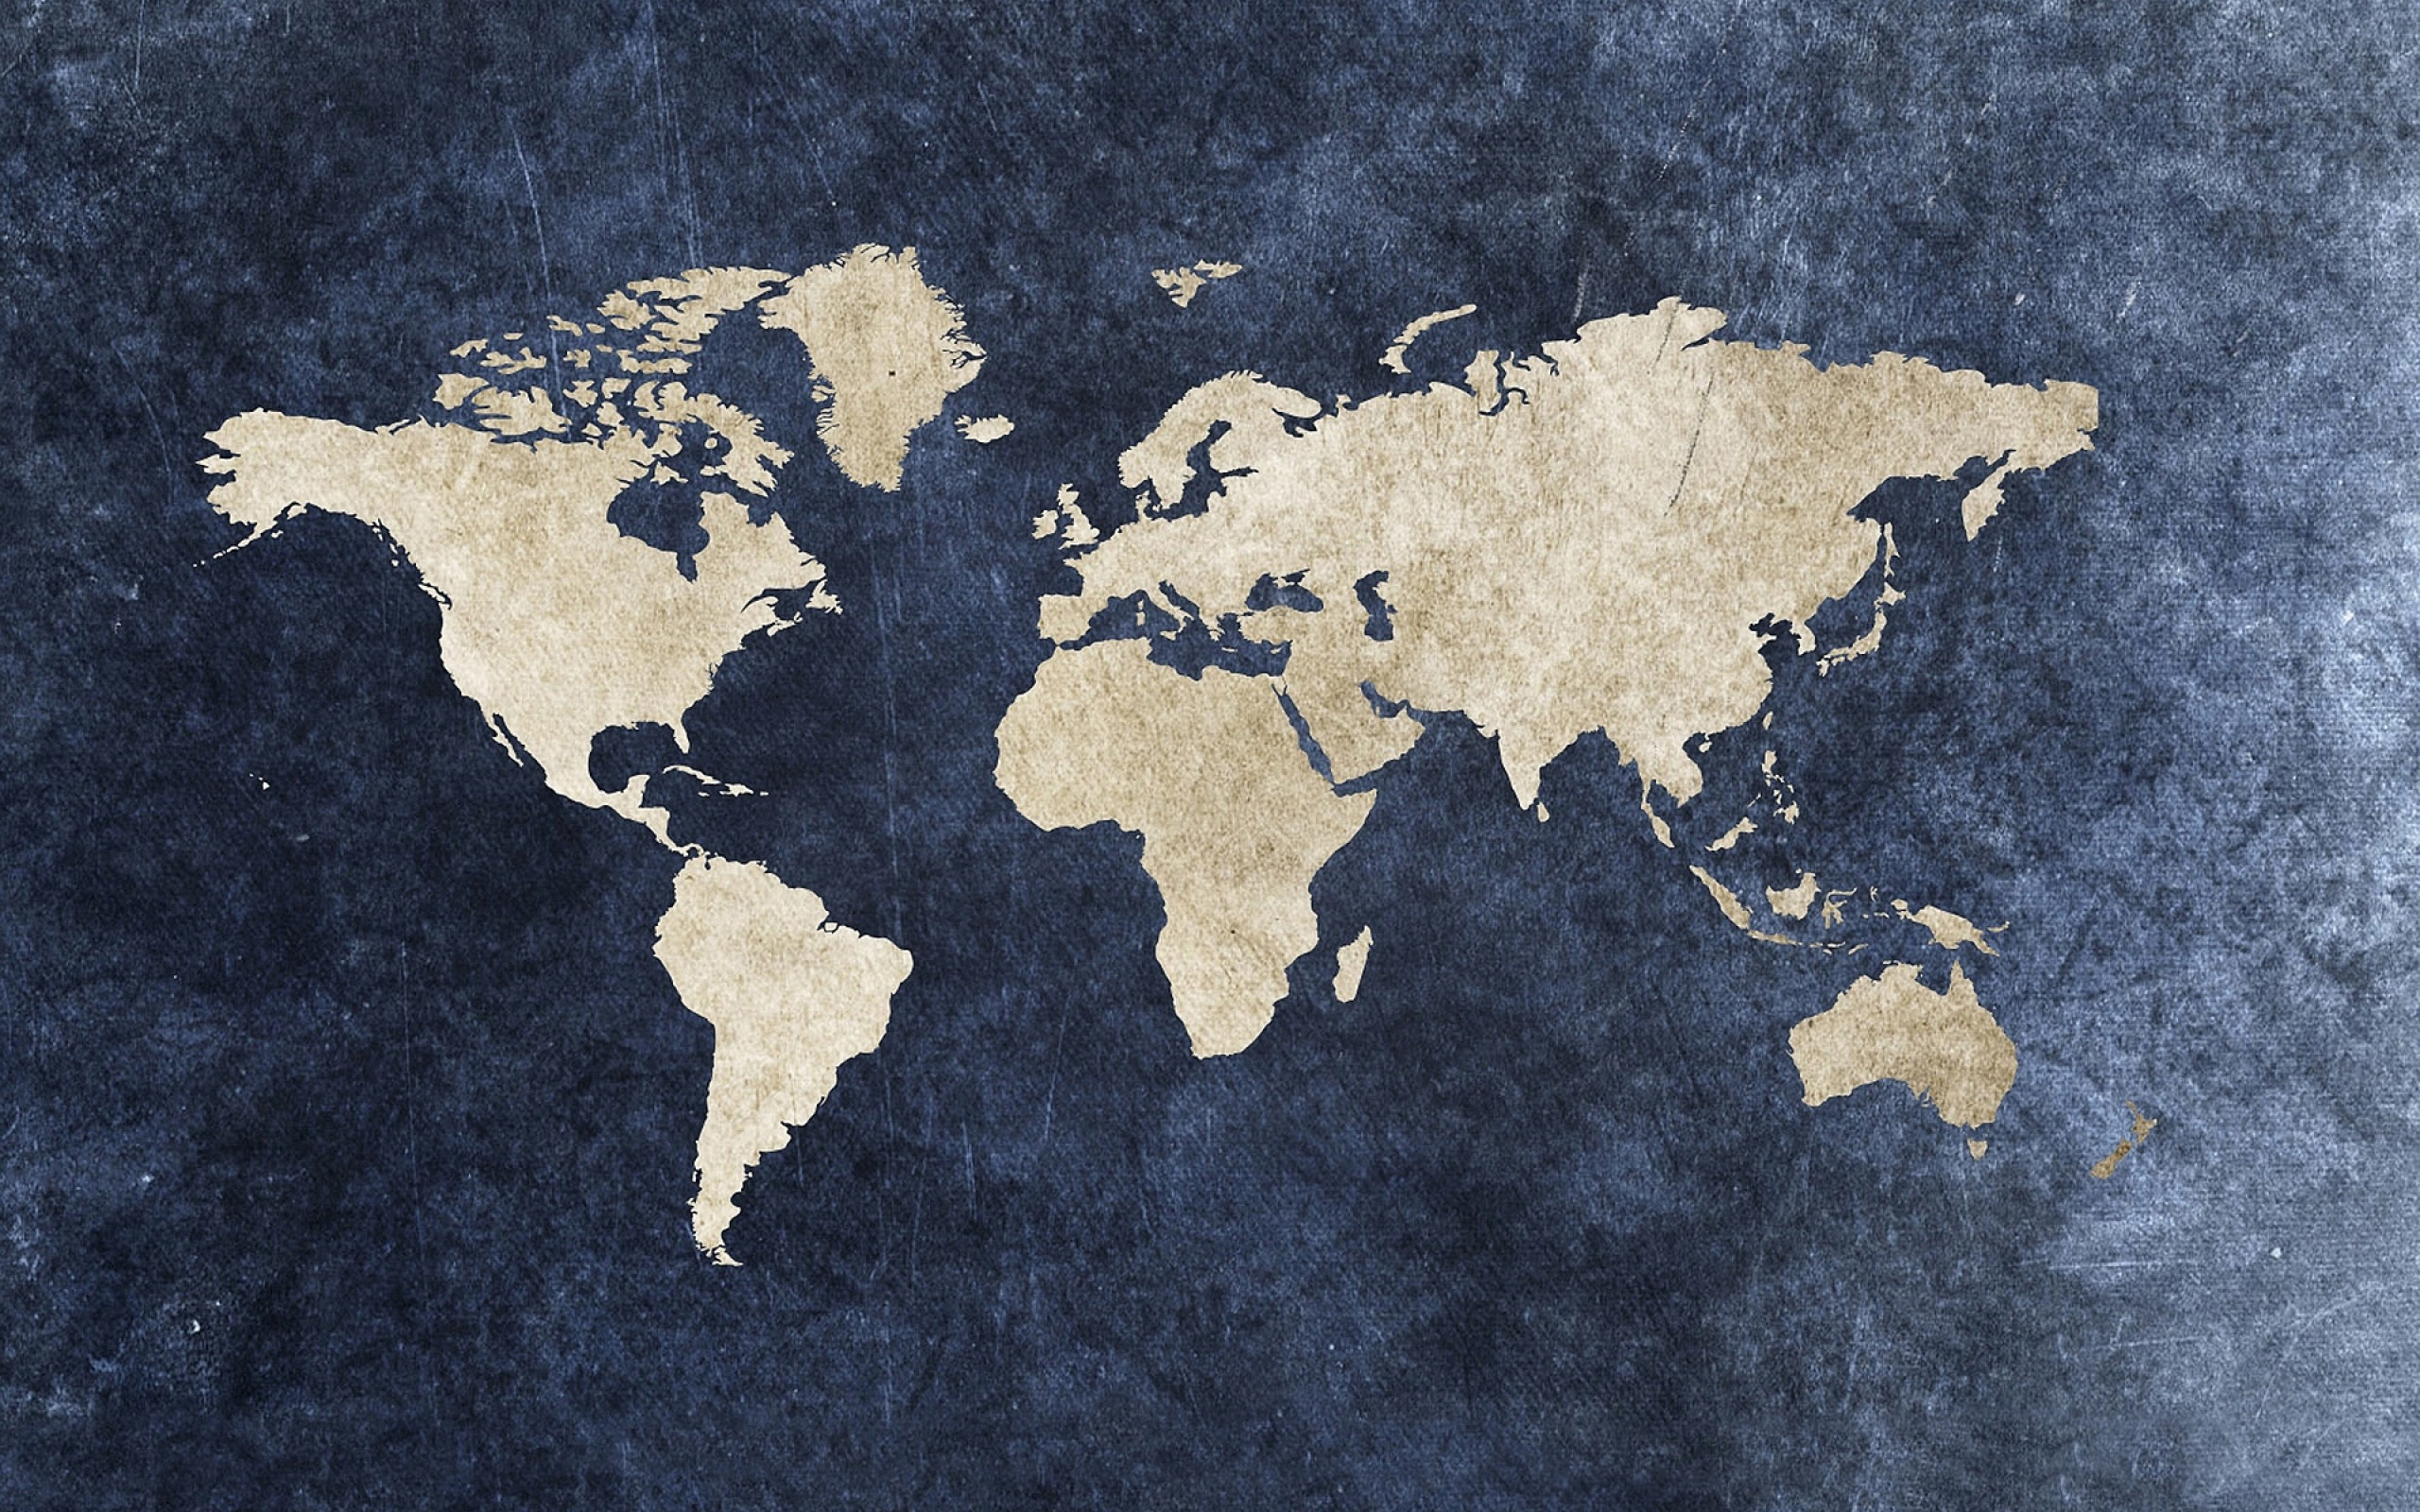 World map background download free stunning high resolution world map background gumiabroncs Gallery